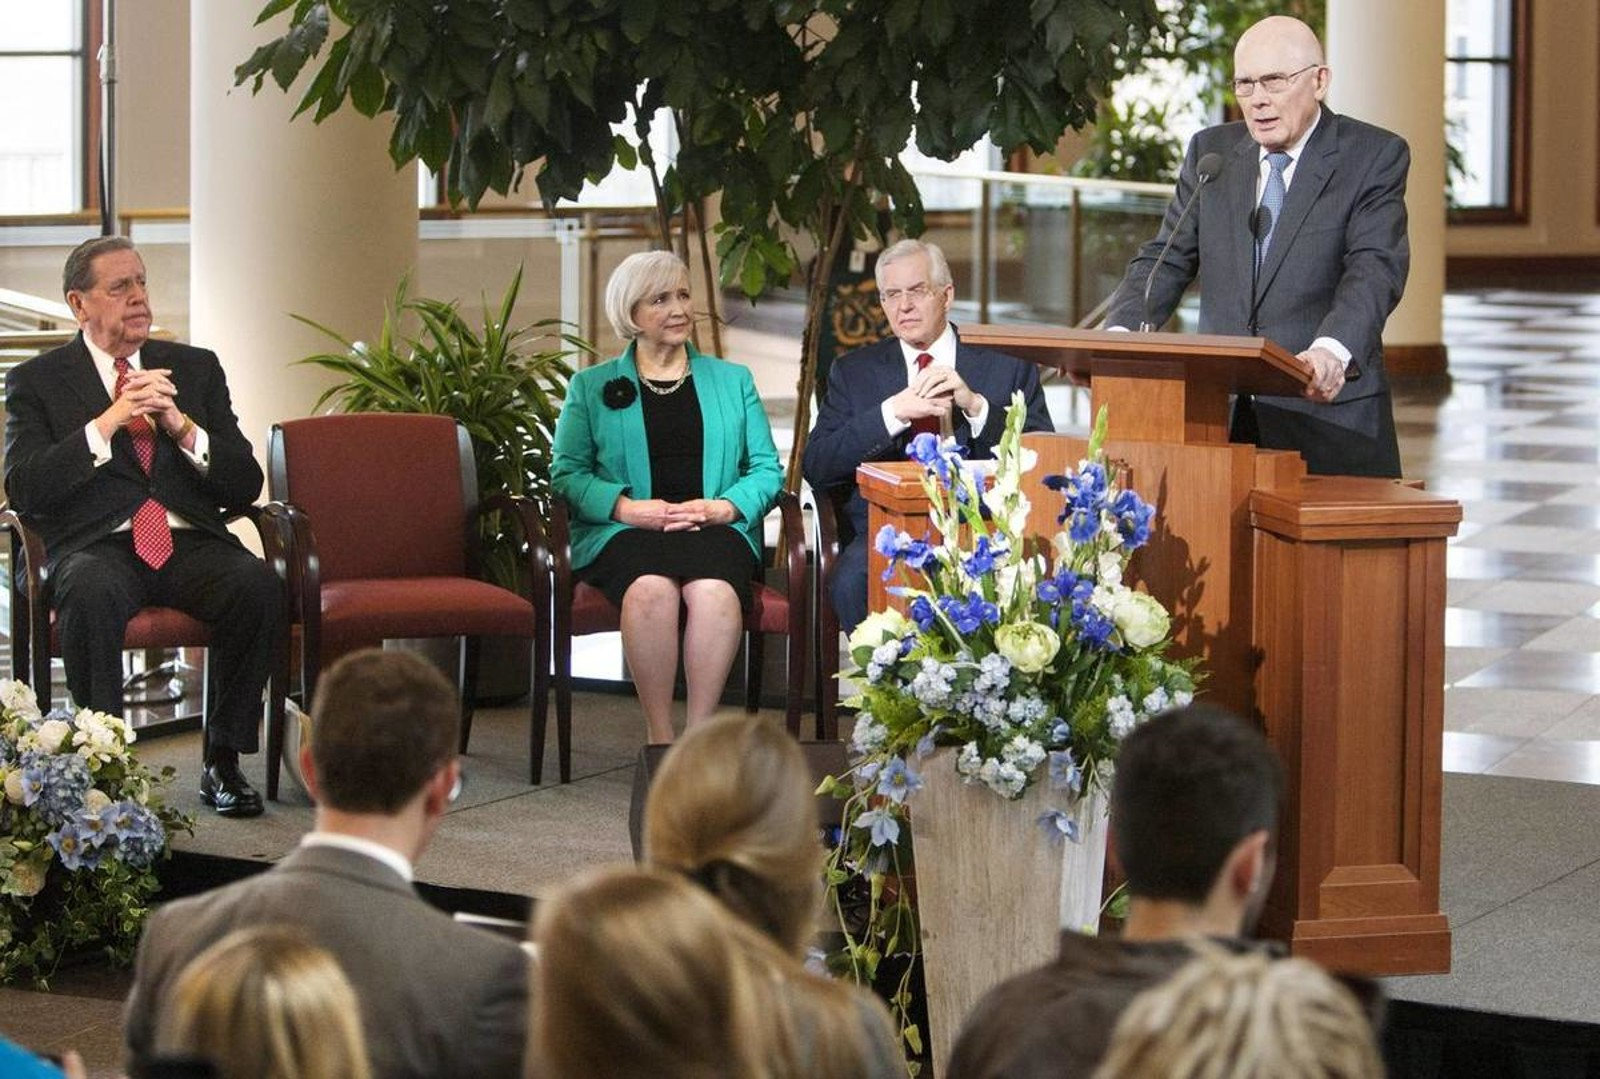 Elder Dallin H. Oaks, of the Quorum of the Twelve Apostles, speaks at a news conference Tuesday, Jan. 27, 2015, inside the Conference Center in Salt Lake City, as leaders of The Church of Jesus Christ of Latter-day Saints reemphasize support for LGBT nondiscrimination laws that protect religious freedoms.